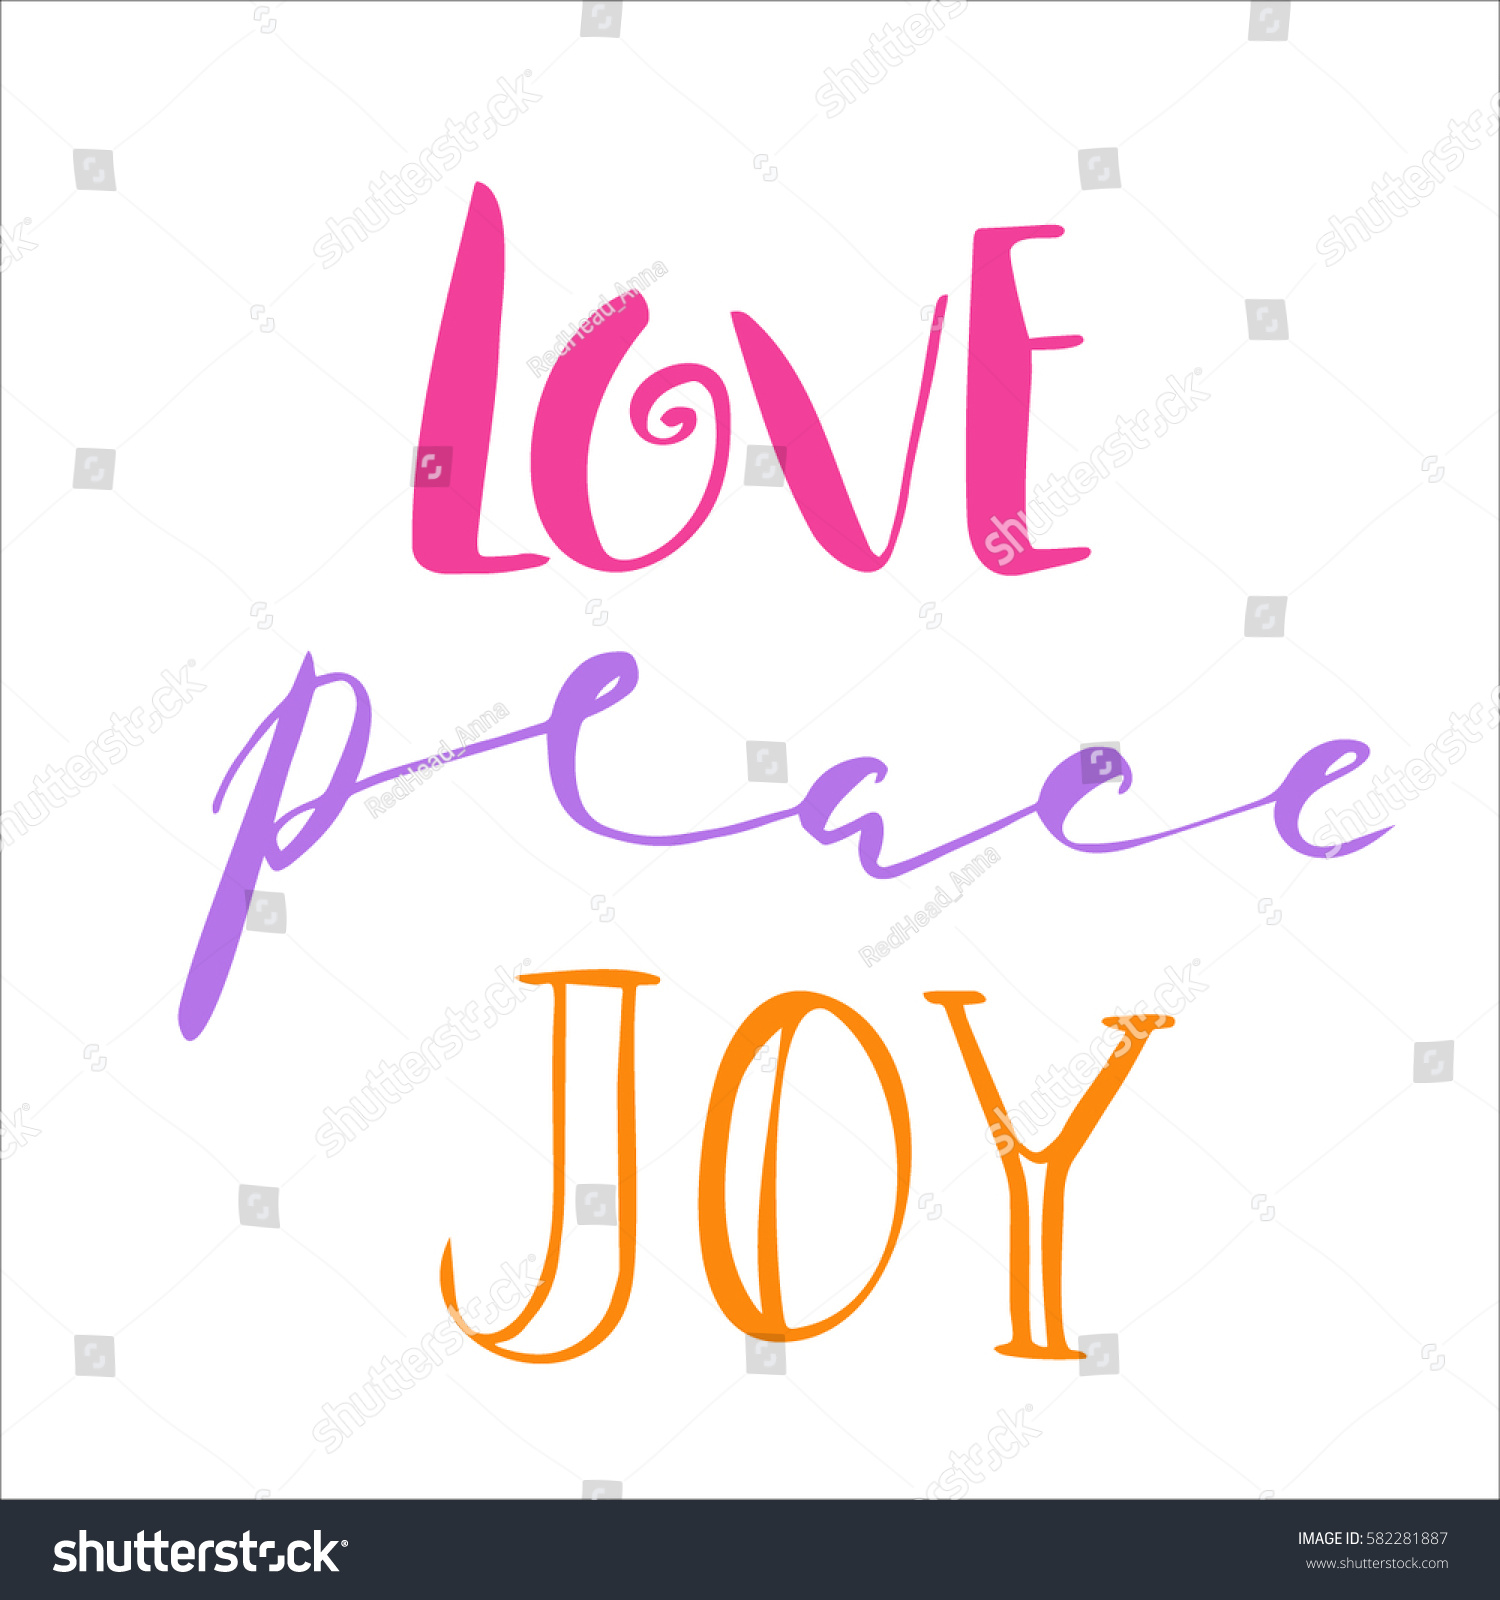 Peace Love Joy Quotes Love Peace Joy Quotestexthand Drawn Brush Stock Vector 582281887